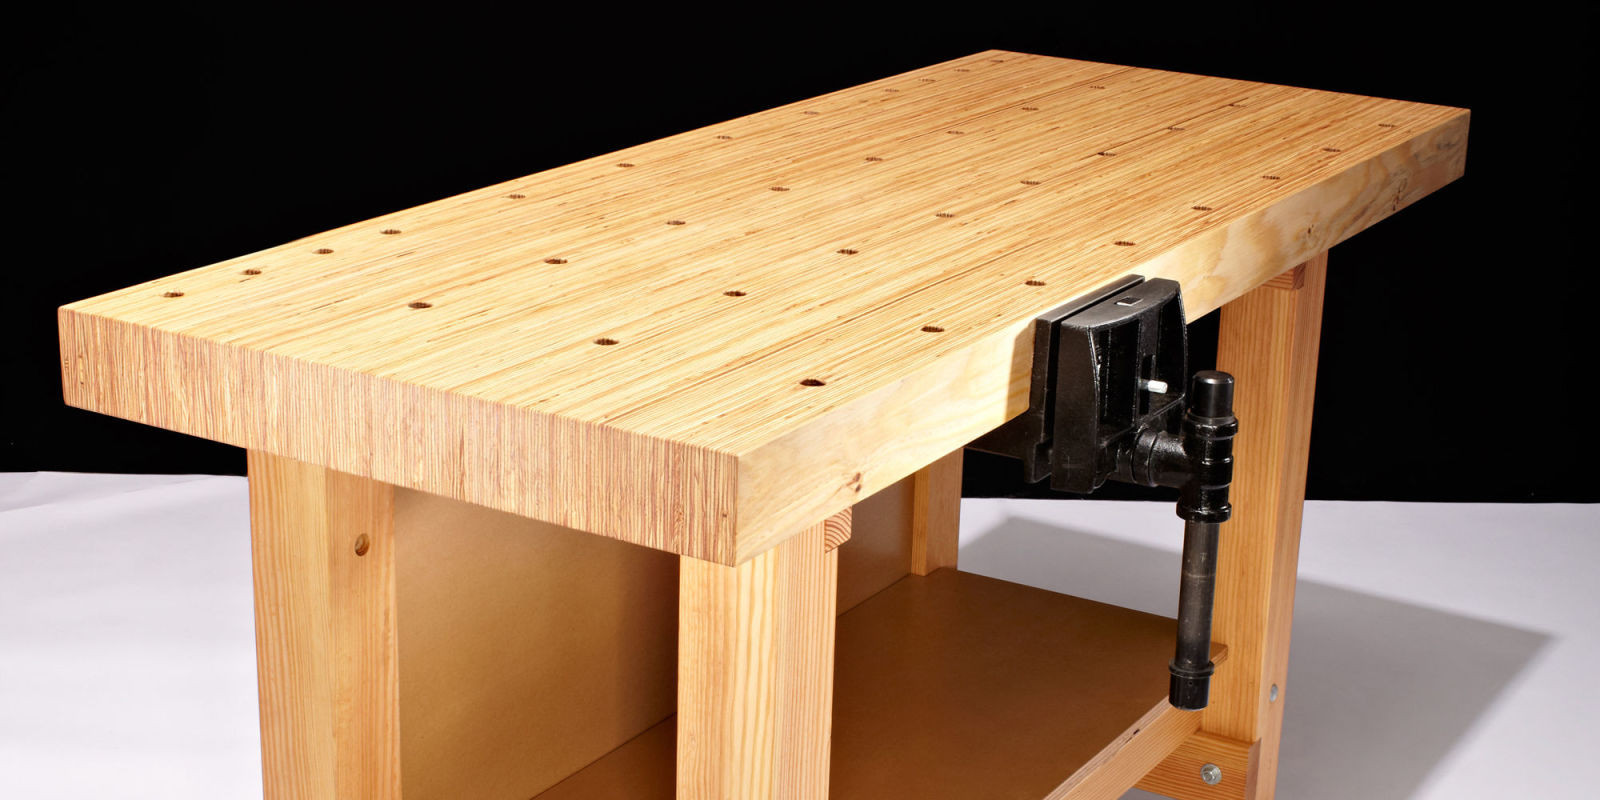 Best ideas about Workbench DIY Plans . Save or Pin How to Build This DIY Workbench Now.